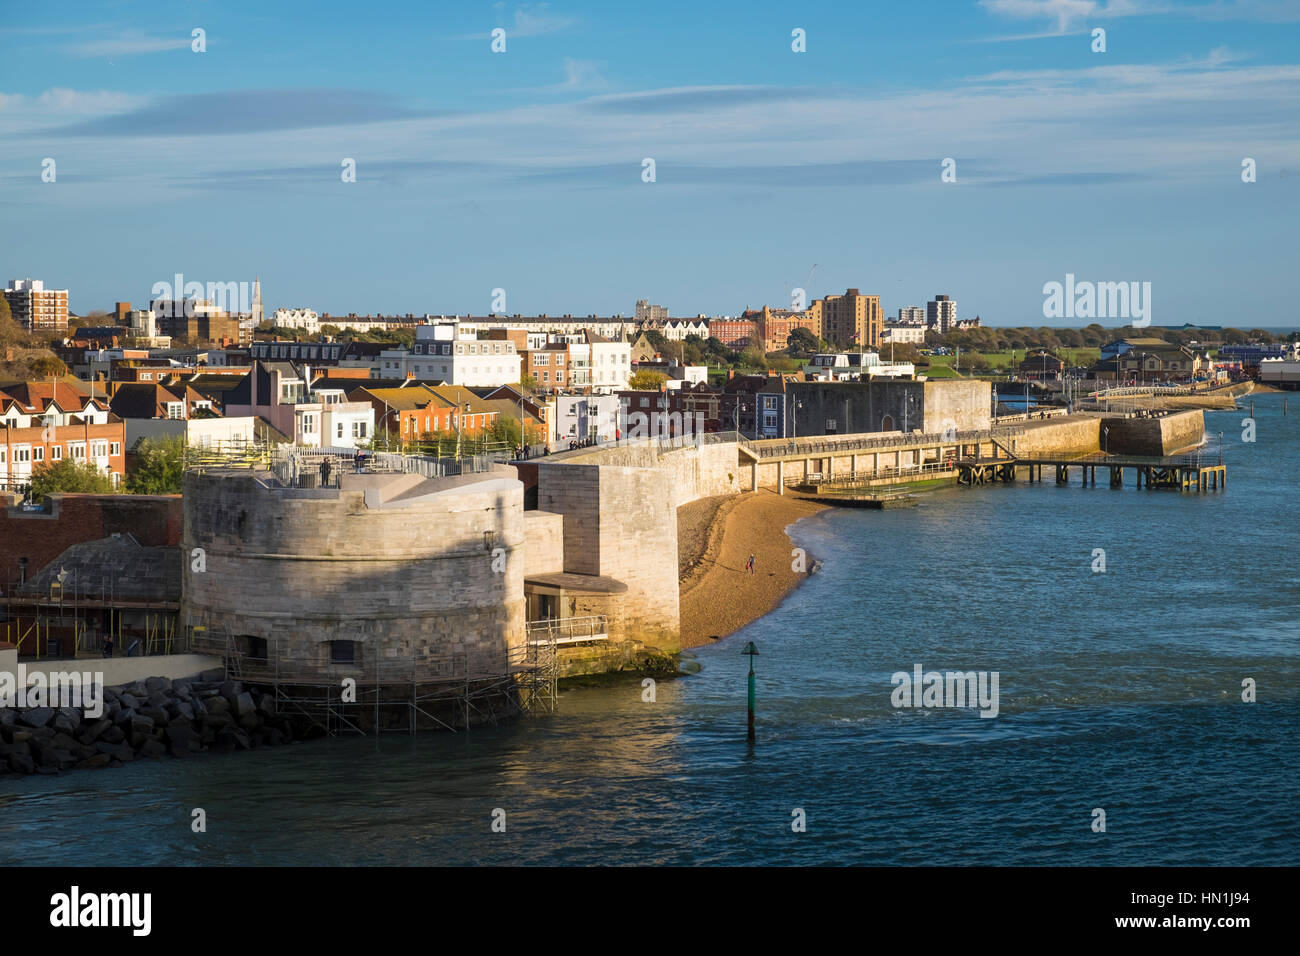 The Round Tower and the Square Tower at the entrance to Portsmouth Harbour Stock Photo